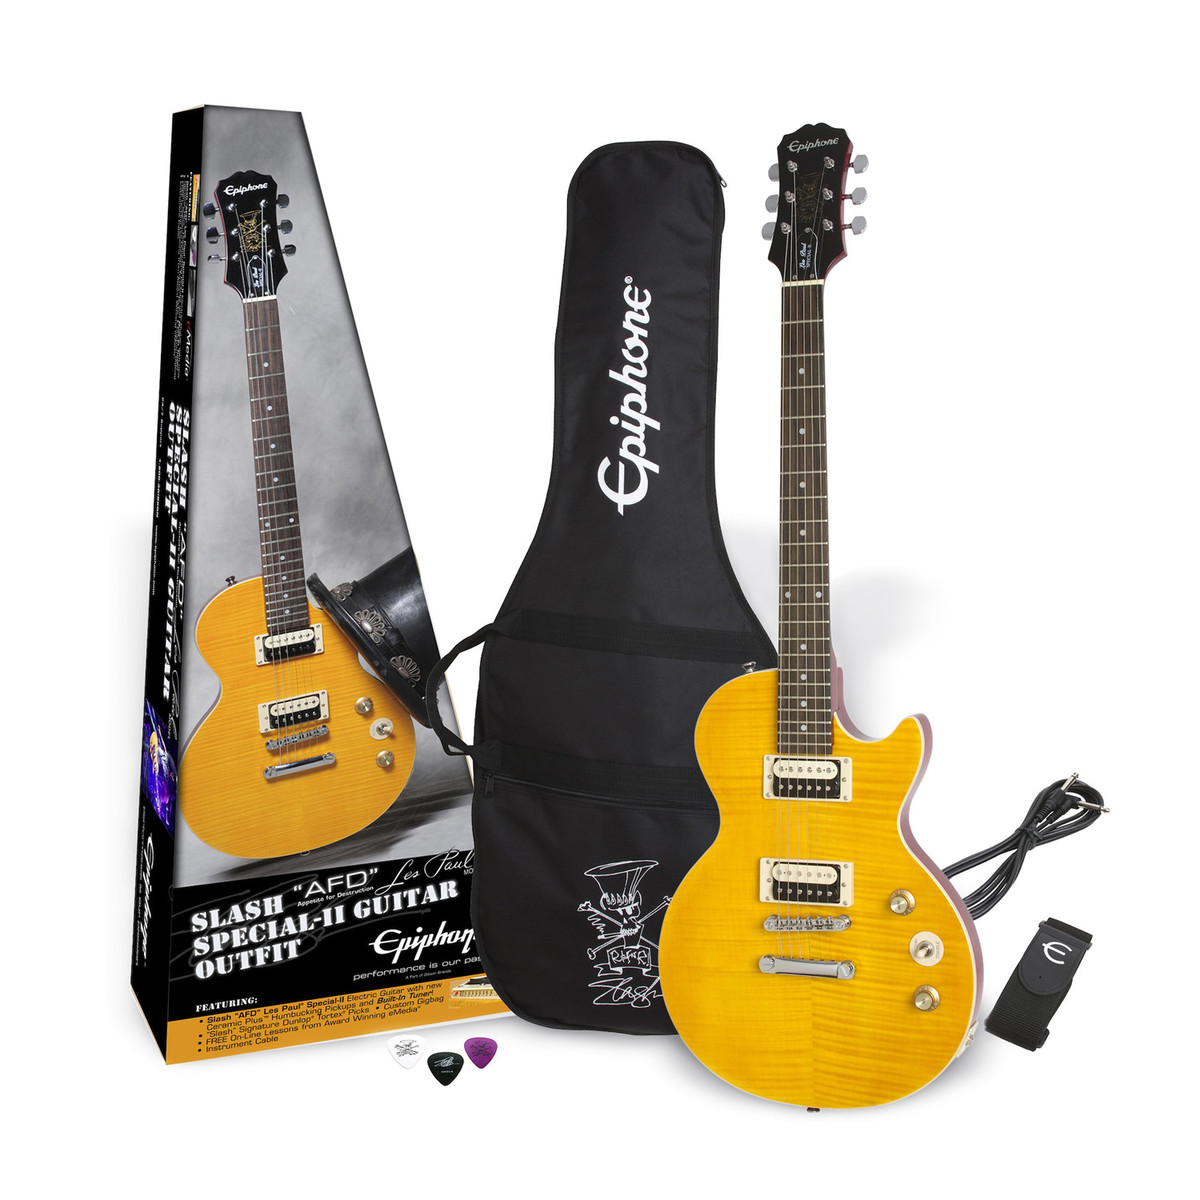 epiphone slash 39 afd 39 les paul special ii electric guitar outfit b stock at gear4music. Black Bedroom Furniture Sets. Home Design Ideas